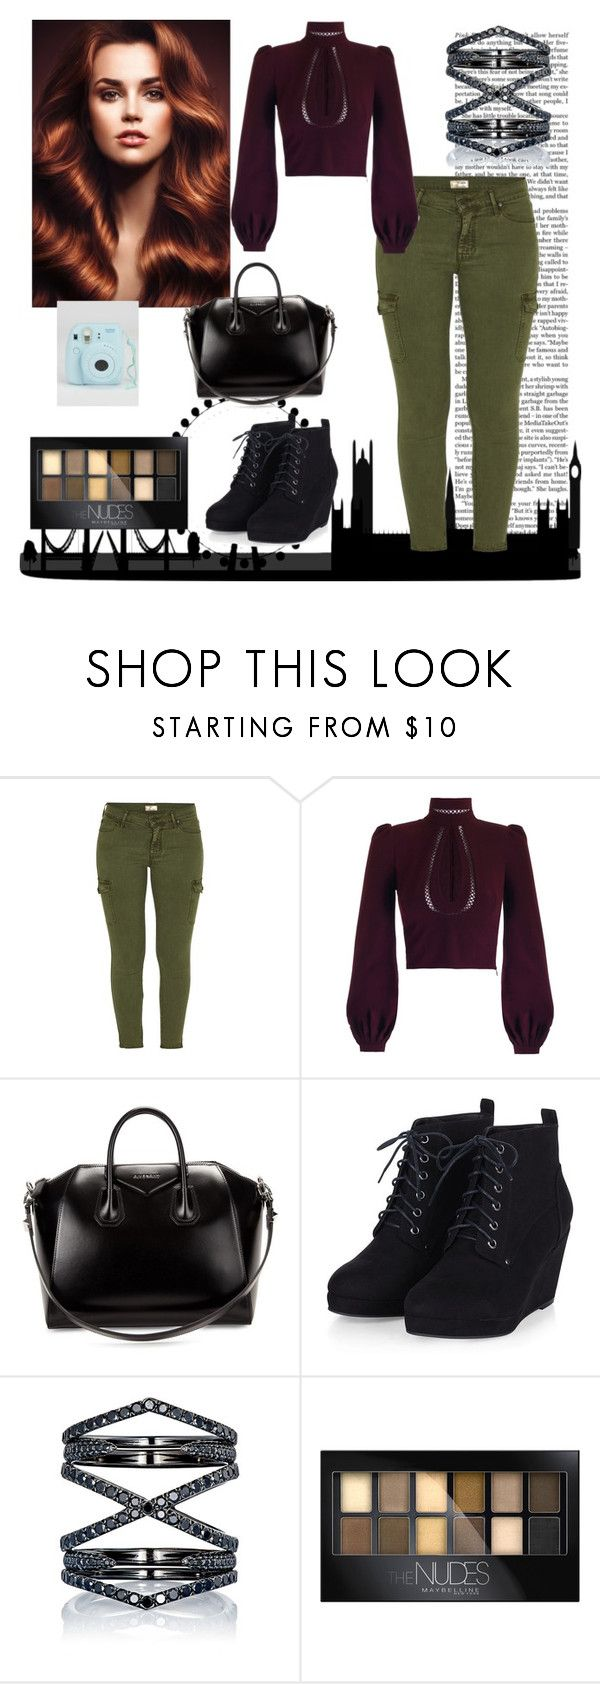 """Modeling"" by jessicakim825 ❤ liked on Polyvore featuring beauty, Nicki Minaj, Mother, Givenchy, Eva Fehren and Maybelline"